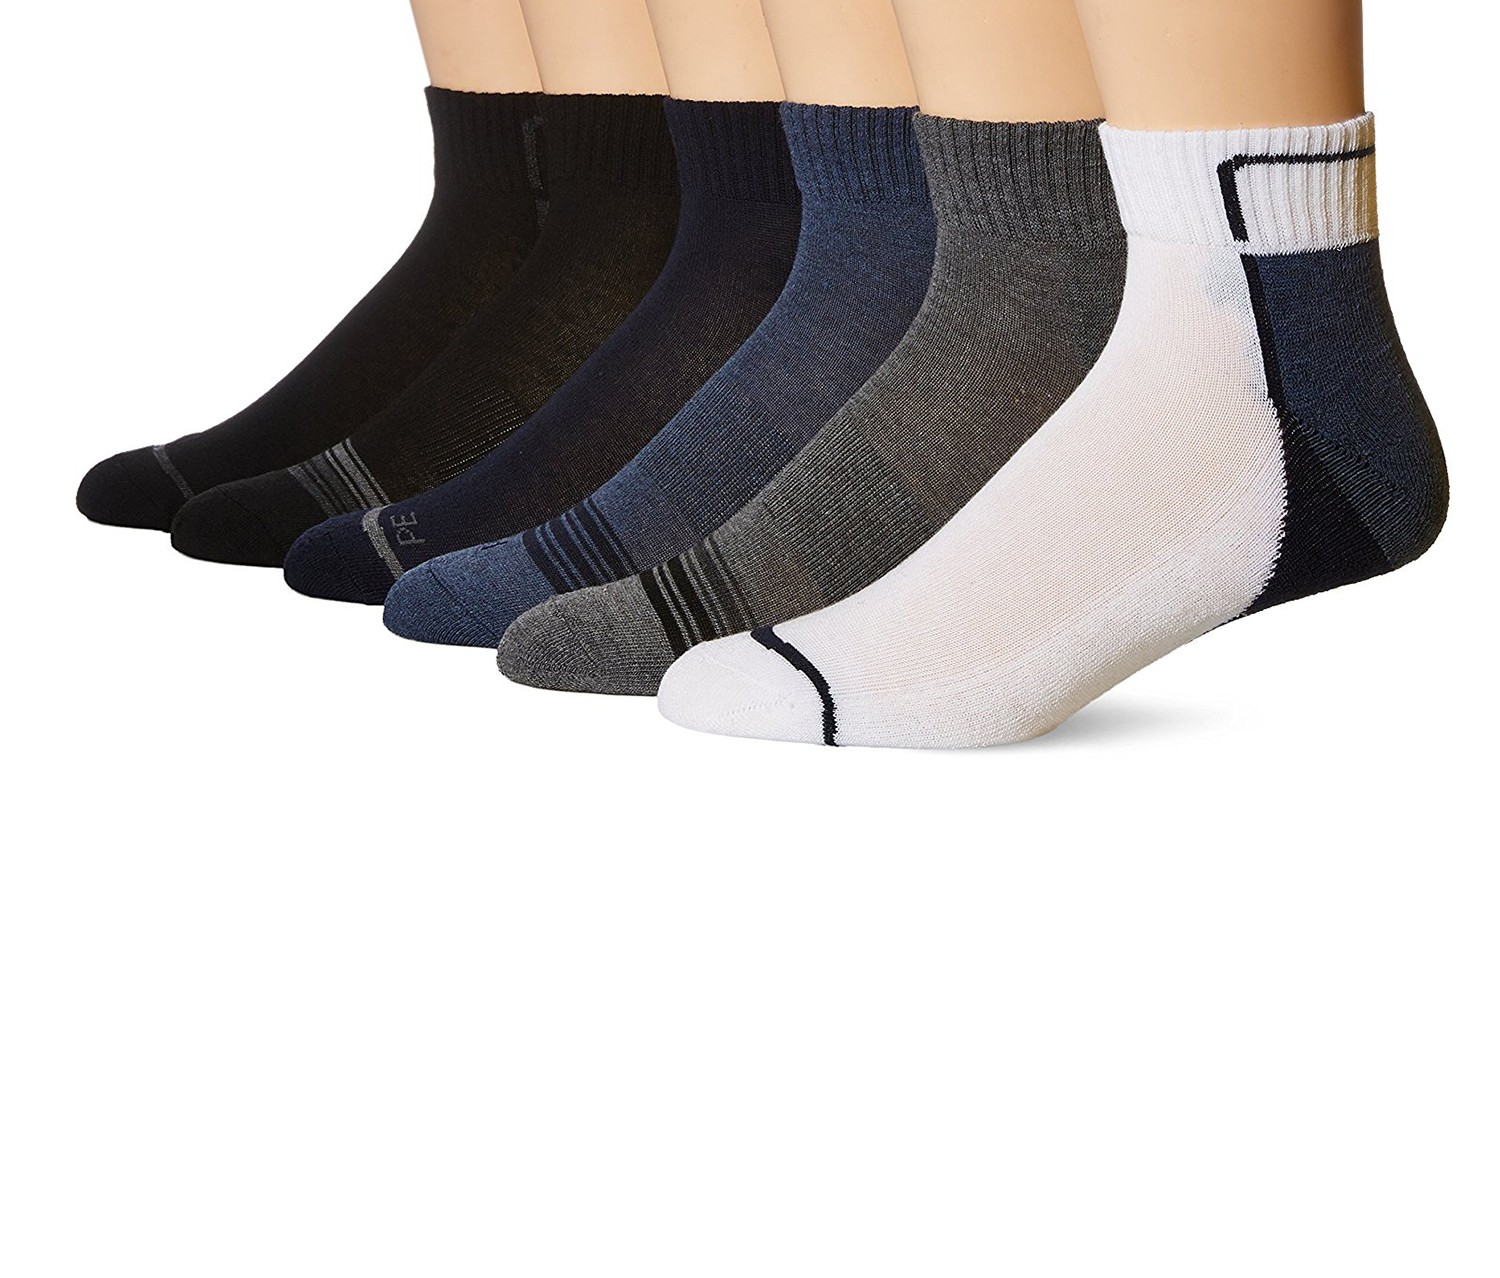 d88893f1fe 4 436260-944.jpg. More Details. The Perry Ellis portfolio speed dry  performance 6 pack quarter socks are ...